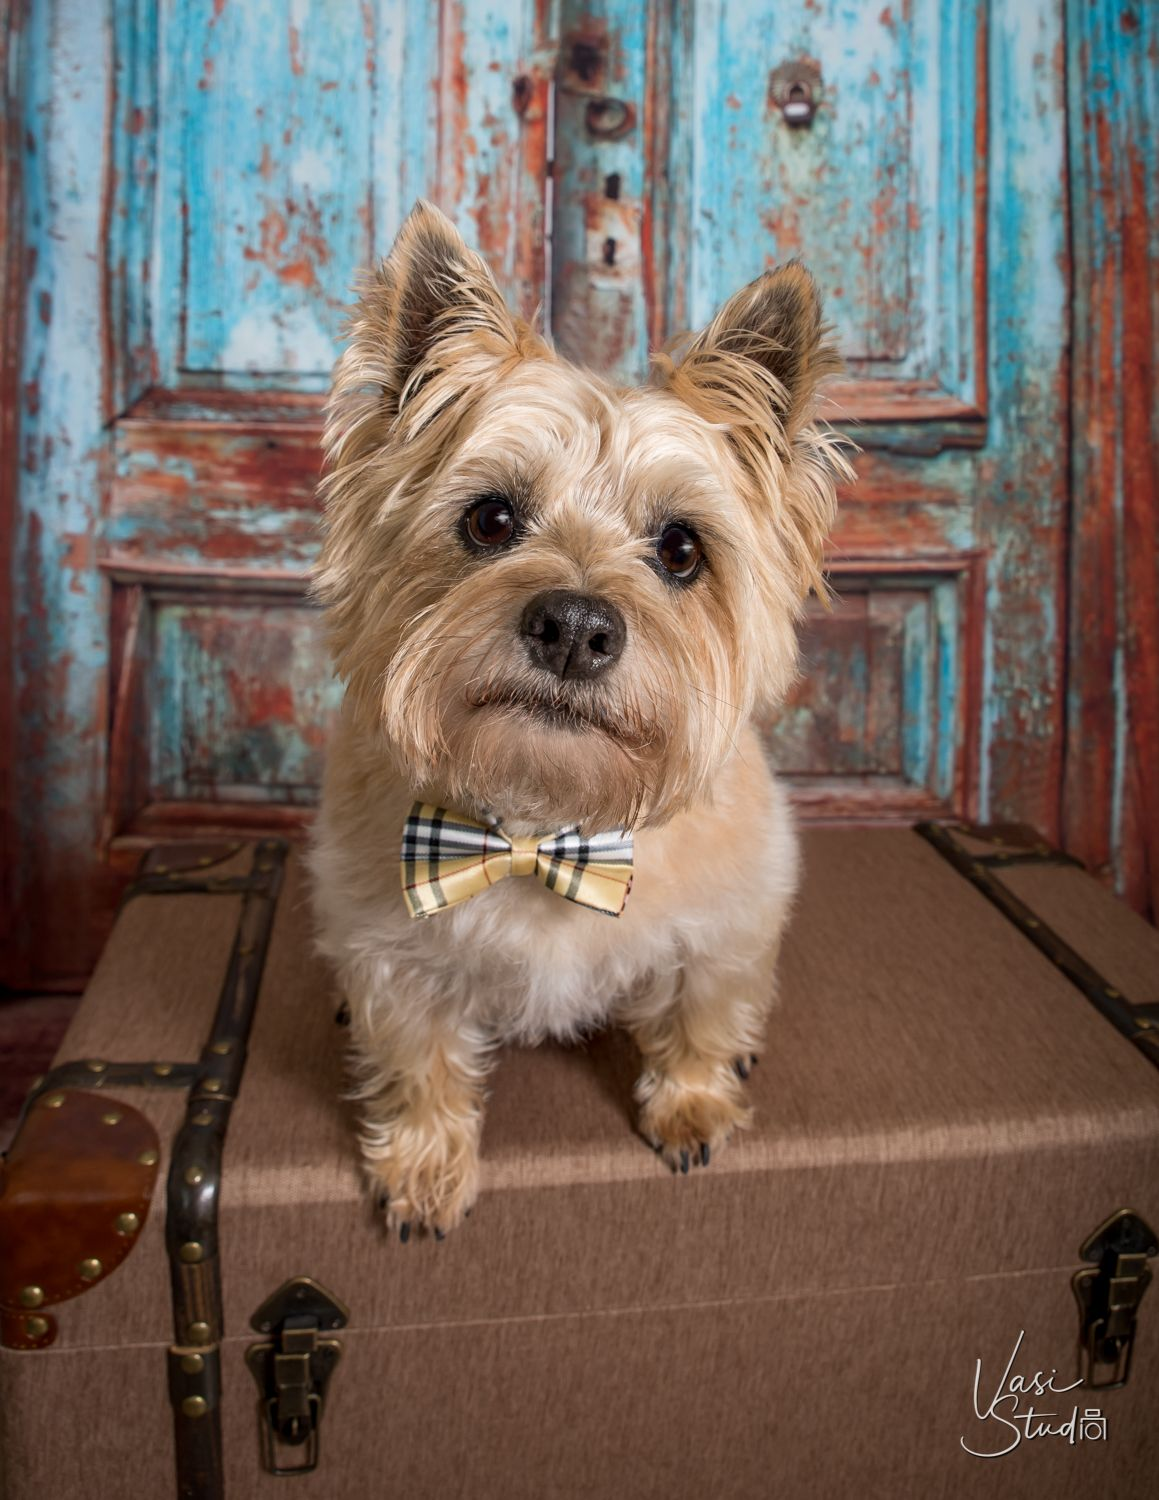 Do you want a professional portrait of your pets? A photo